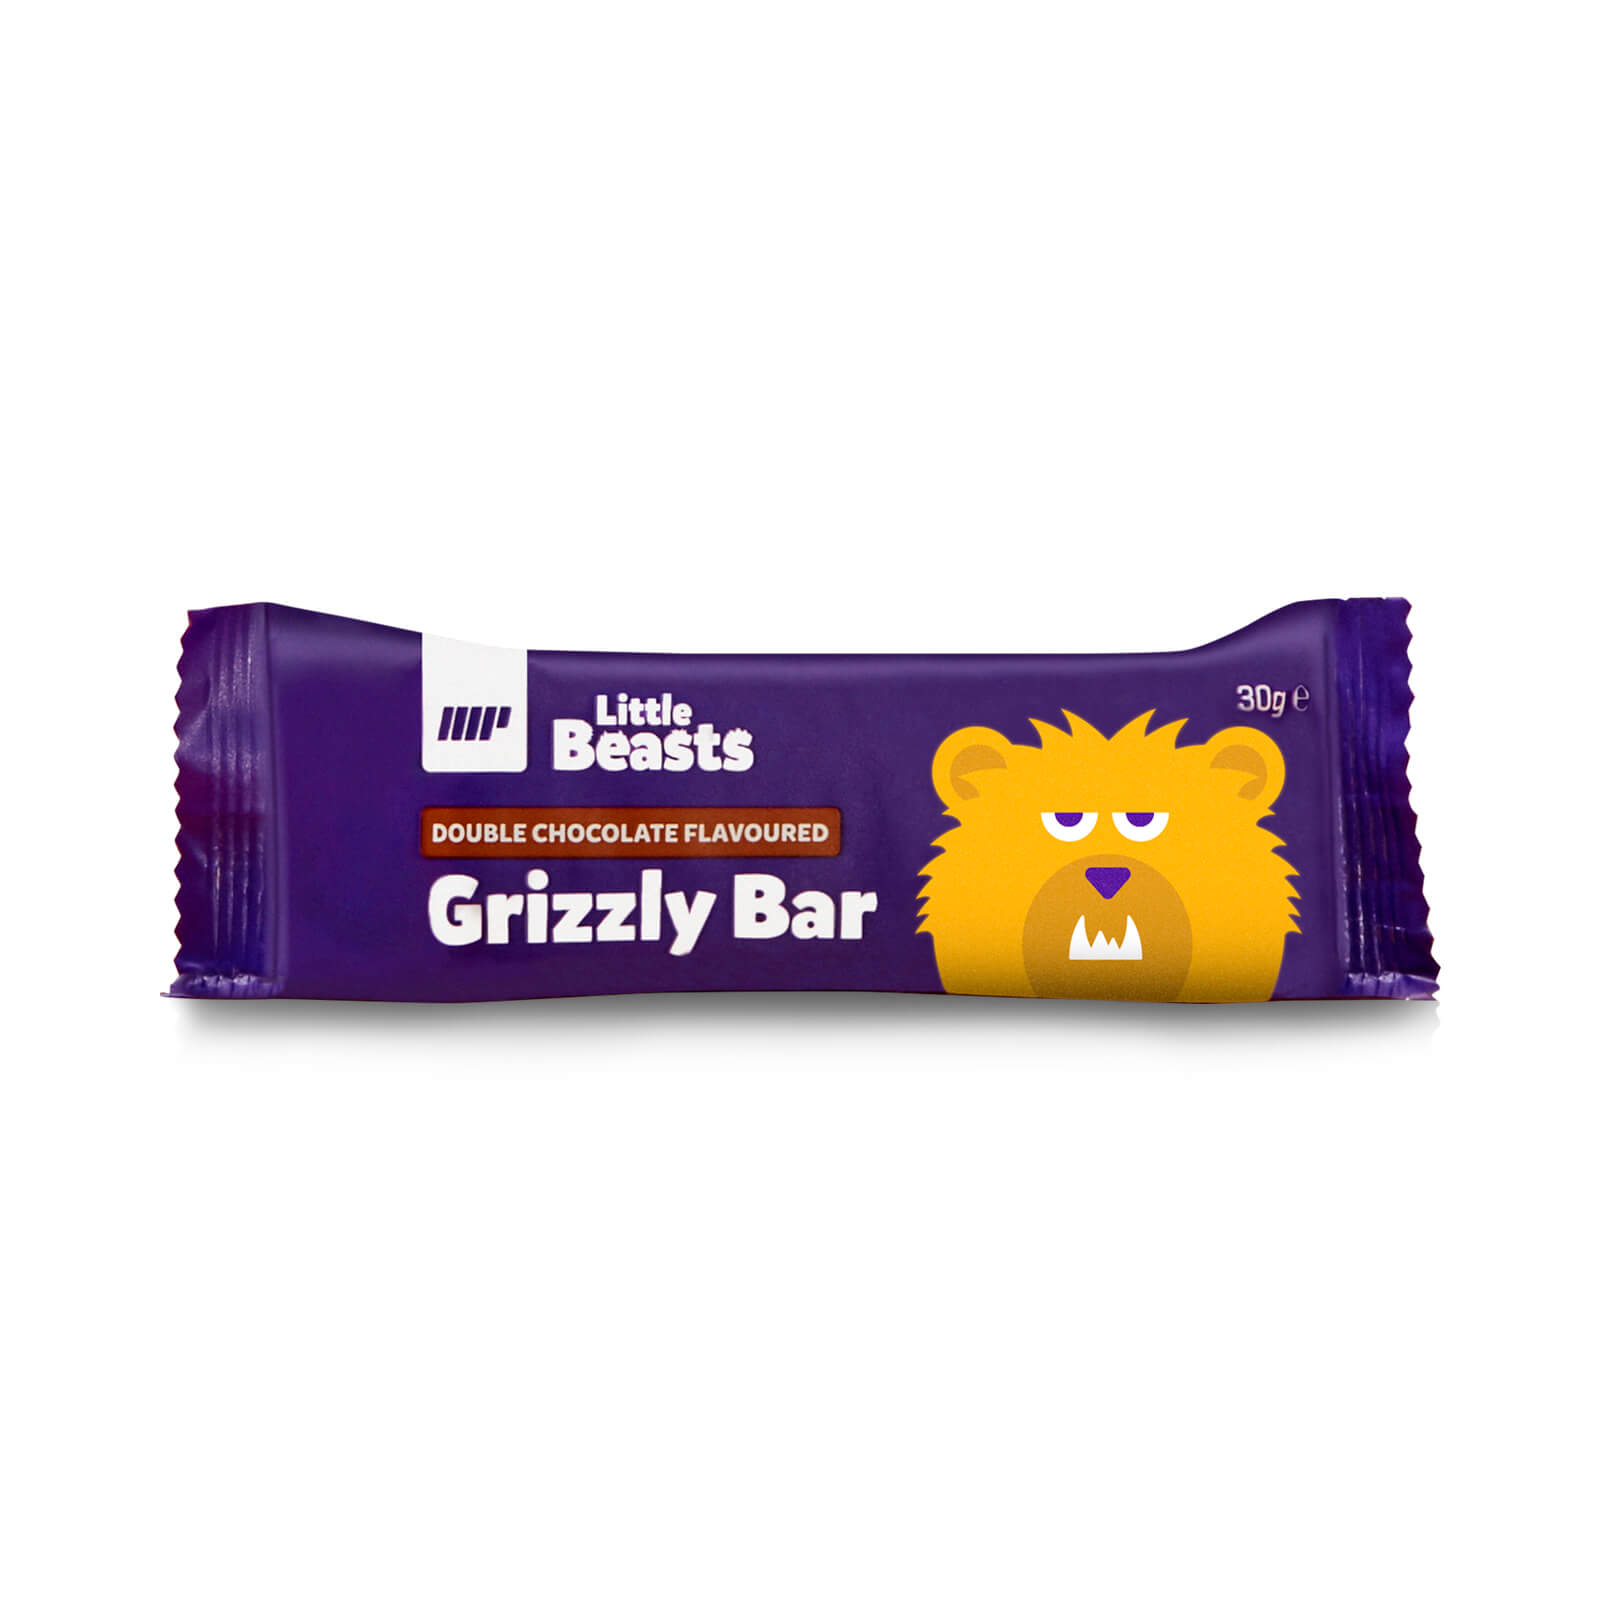 Little Beasts Grizzly Bar - Sample